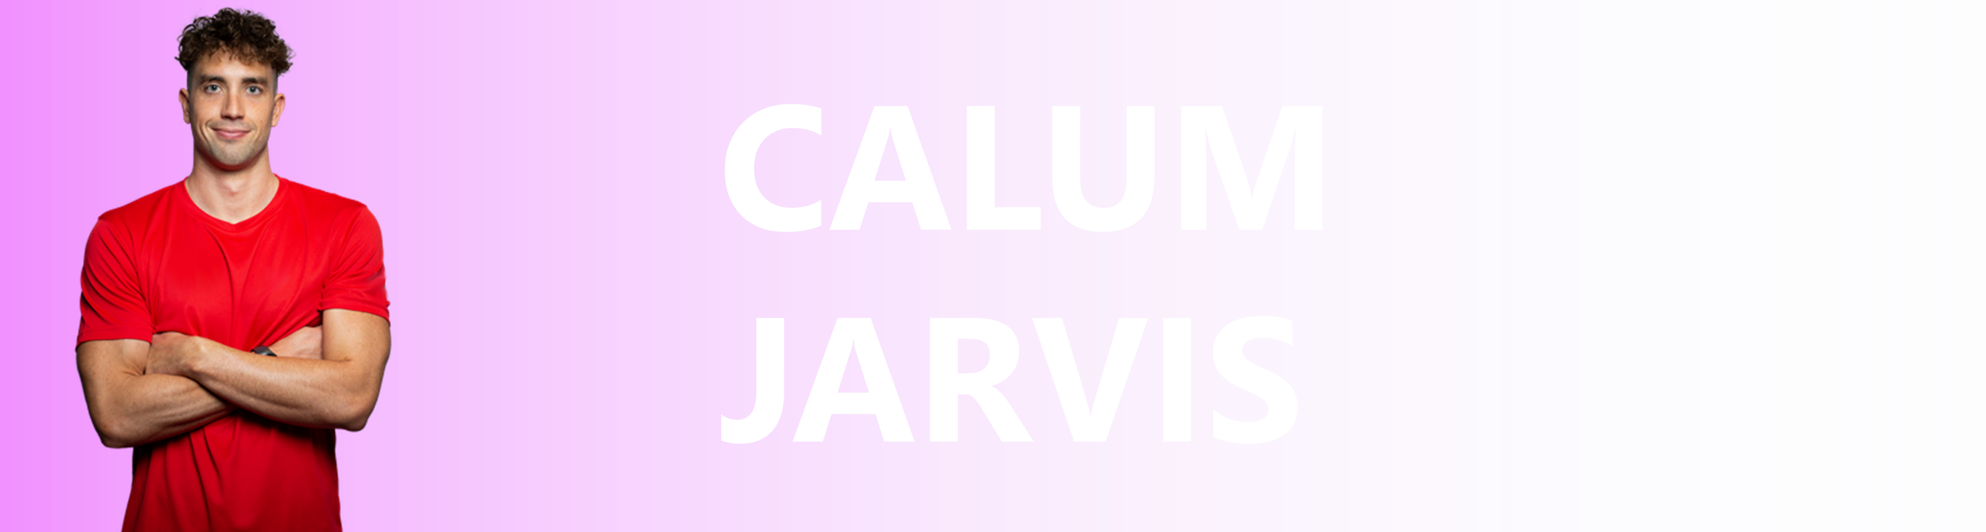 Calum Jarvis SwimPath Team Profile Page